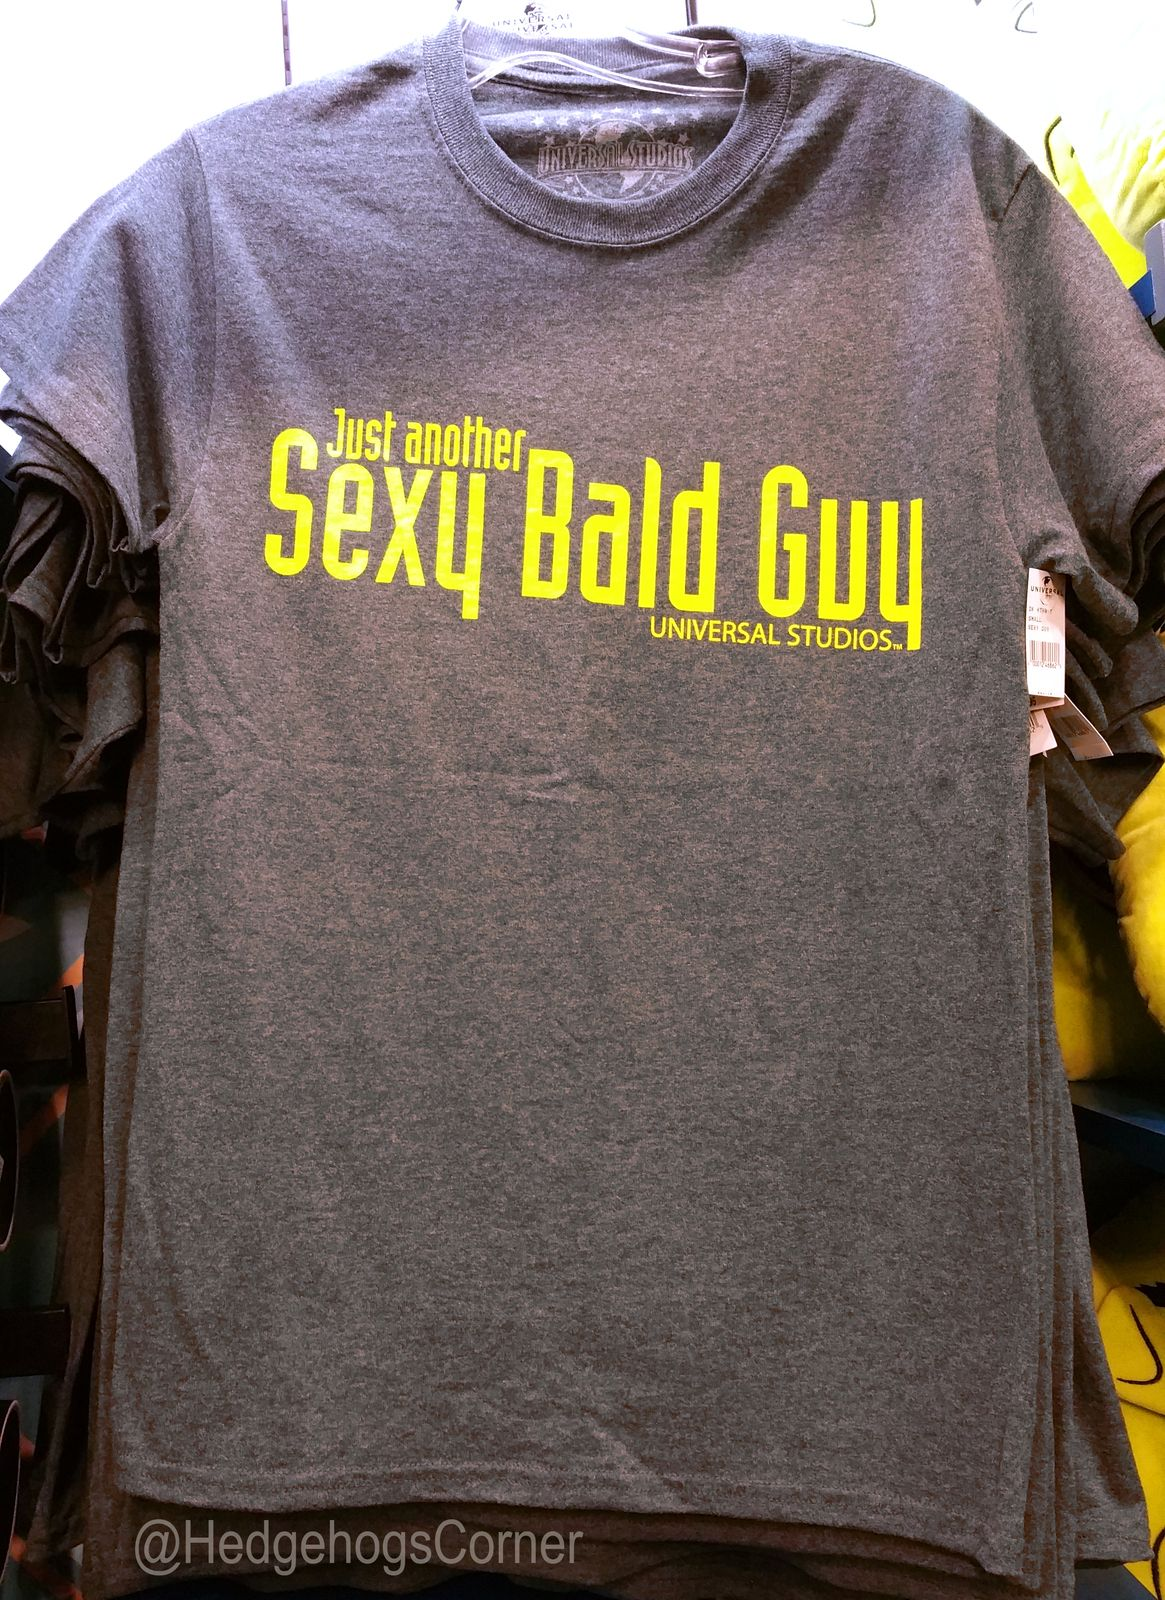 0f4b5144a lol, cool gift for your BALD guy! Universal Studios Dreamworks Shrek 4D  Just Another Sexy Bald Guy Shirt Gray